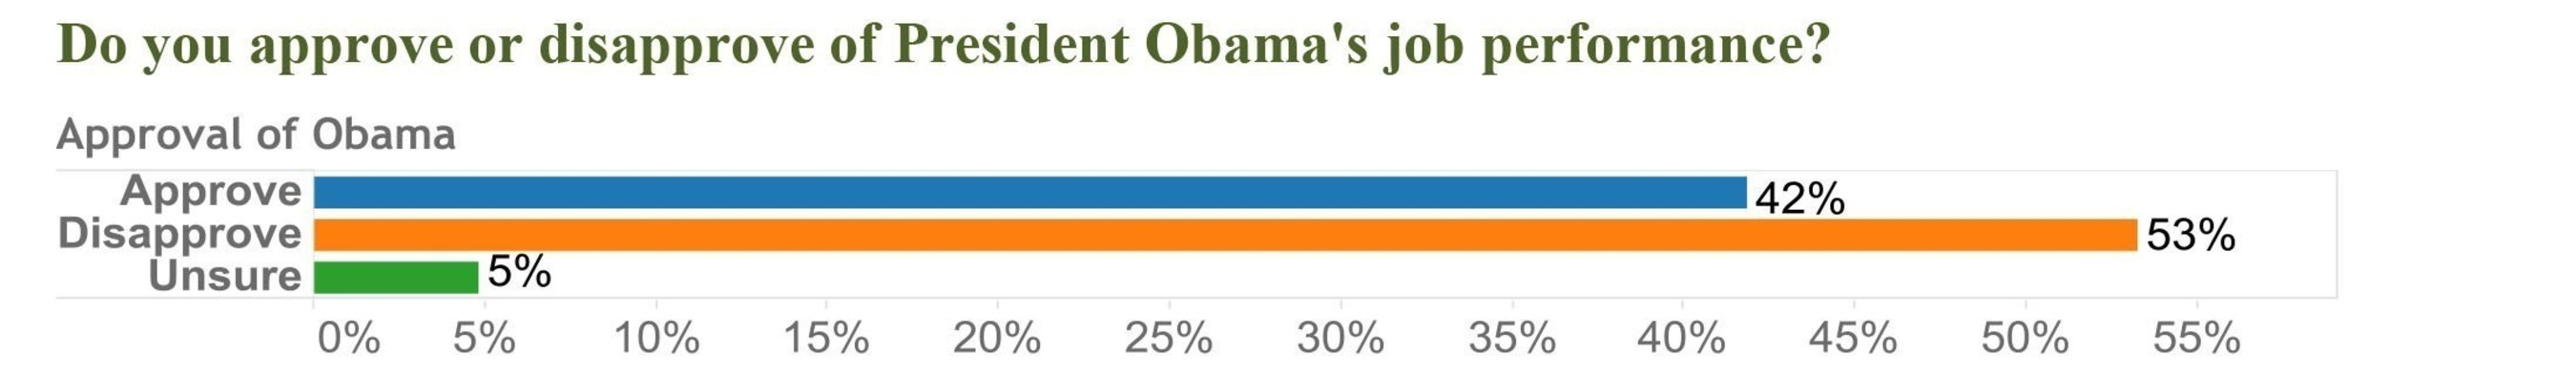 Do you approve or disapprove of President Obama's job performance?